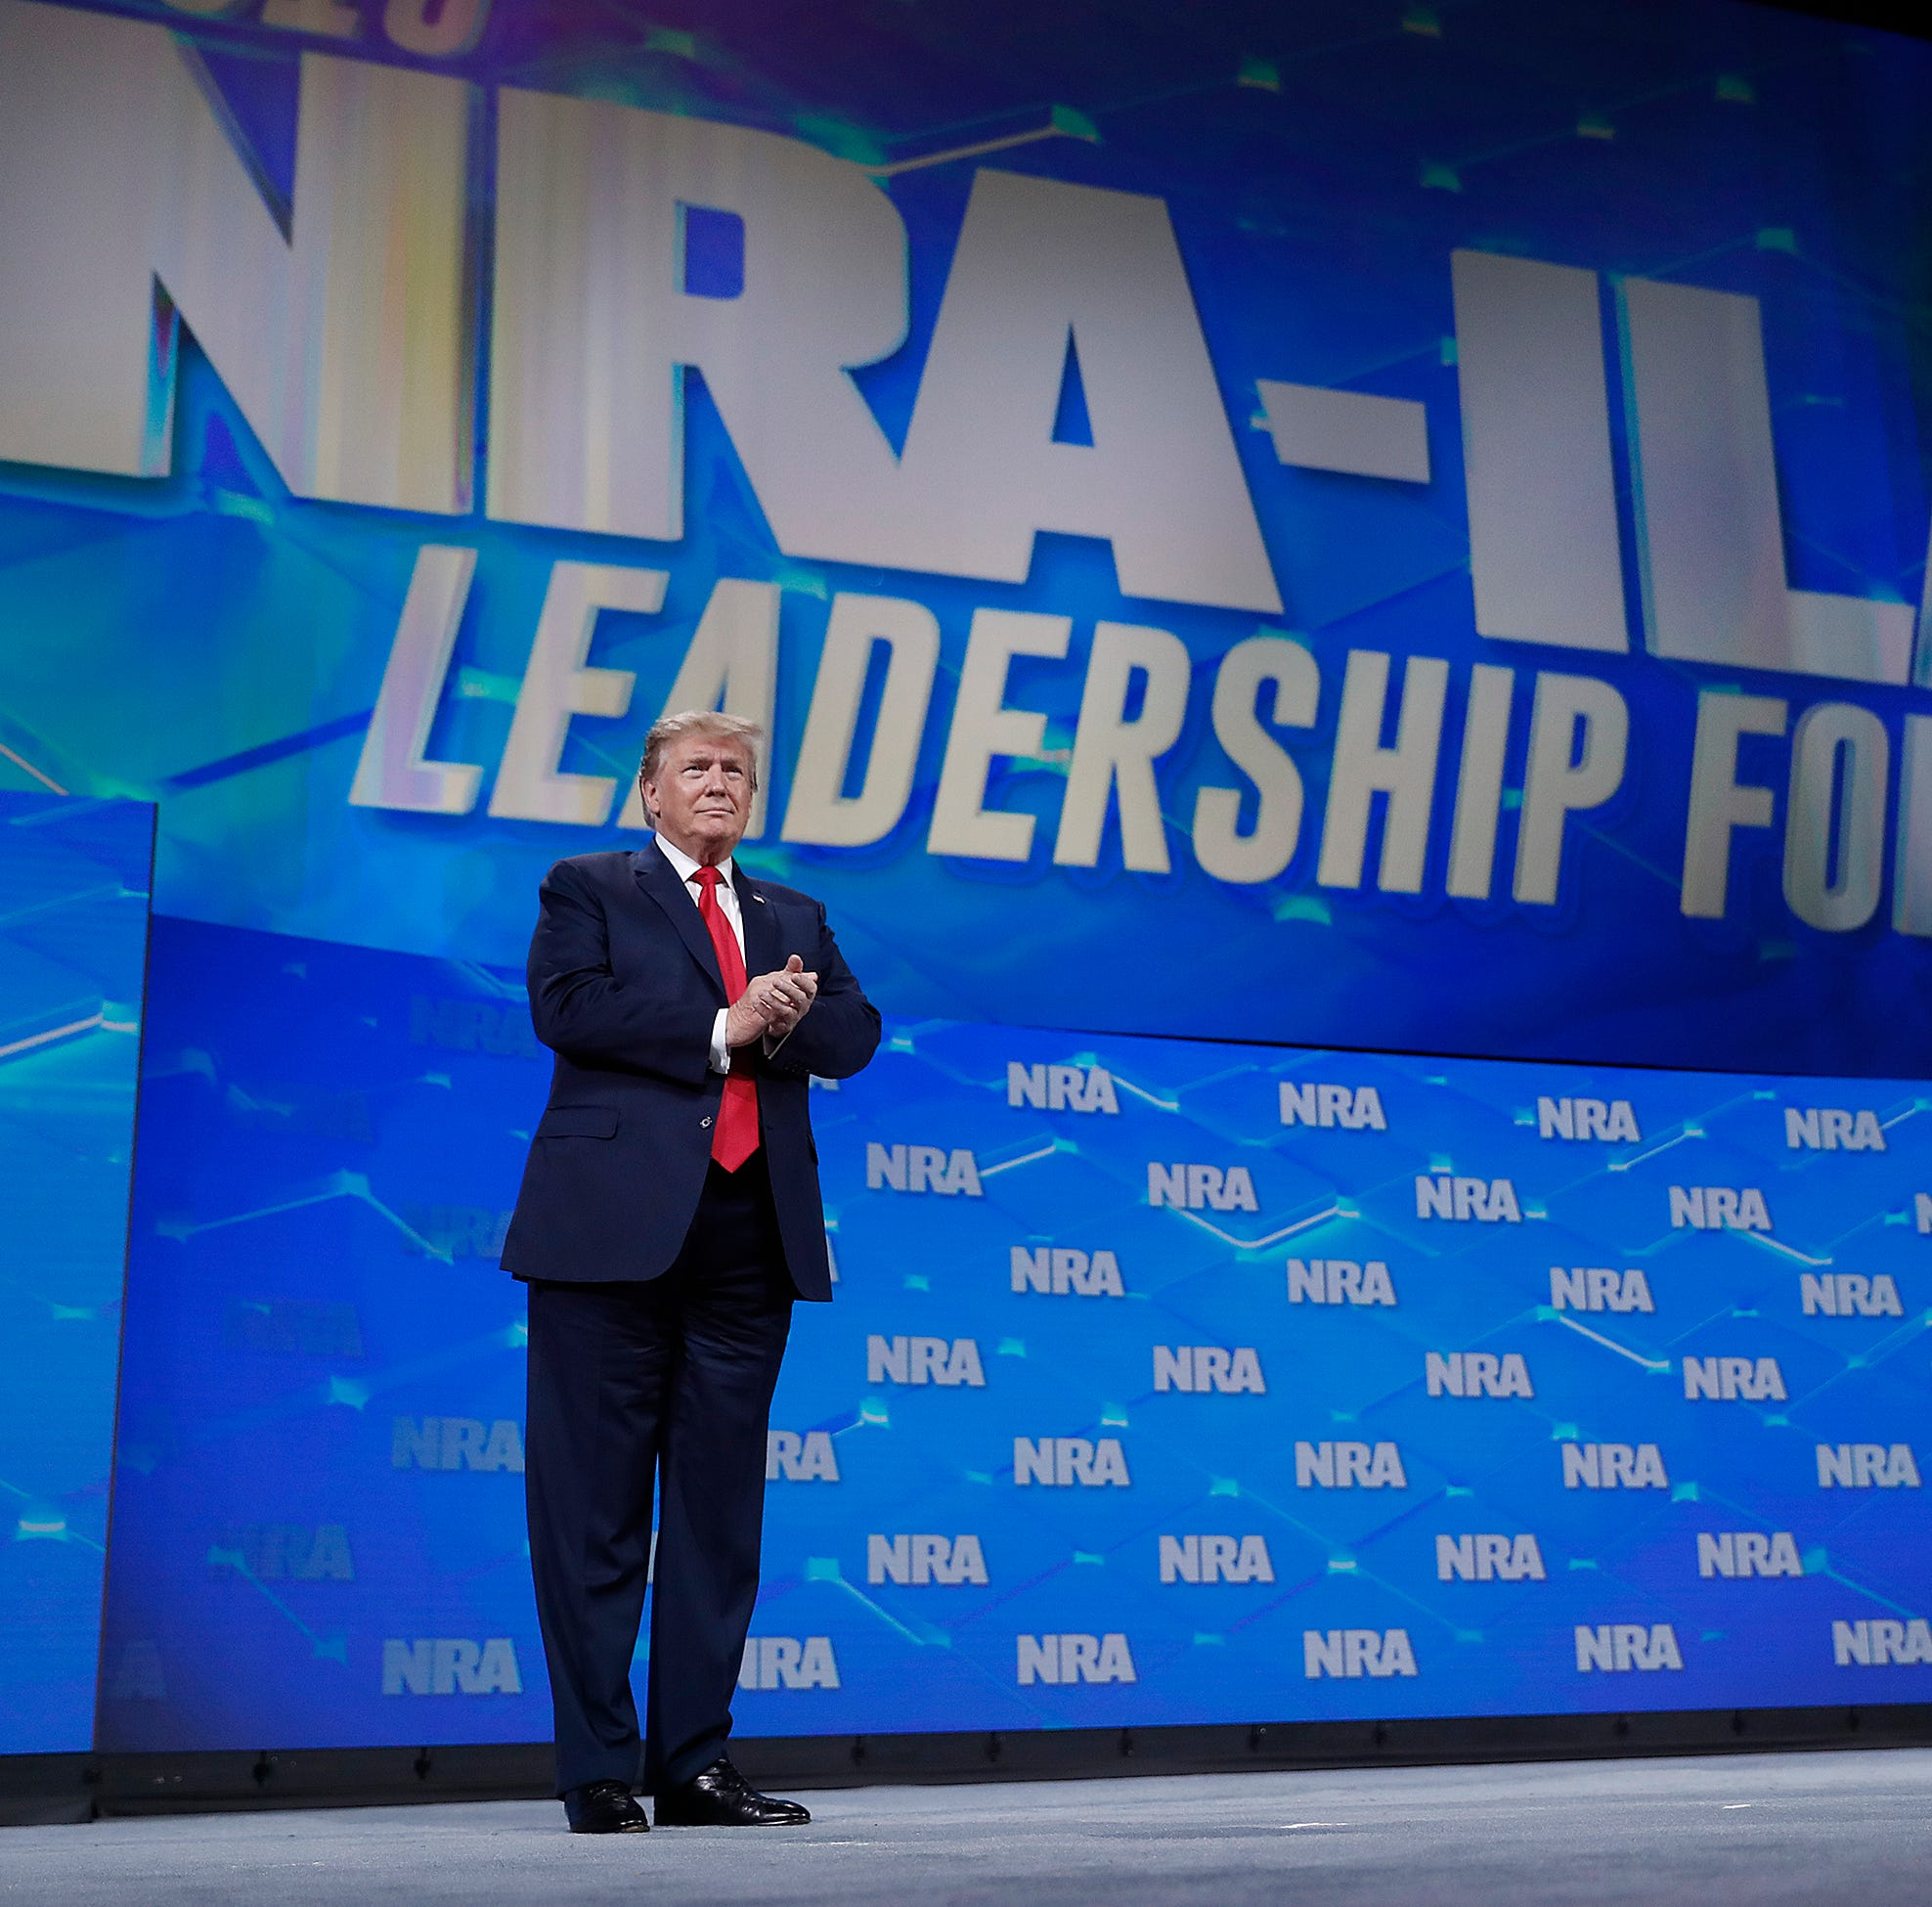 Watch video of President Donald Trump's speech at NRA convention in Indianapolis